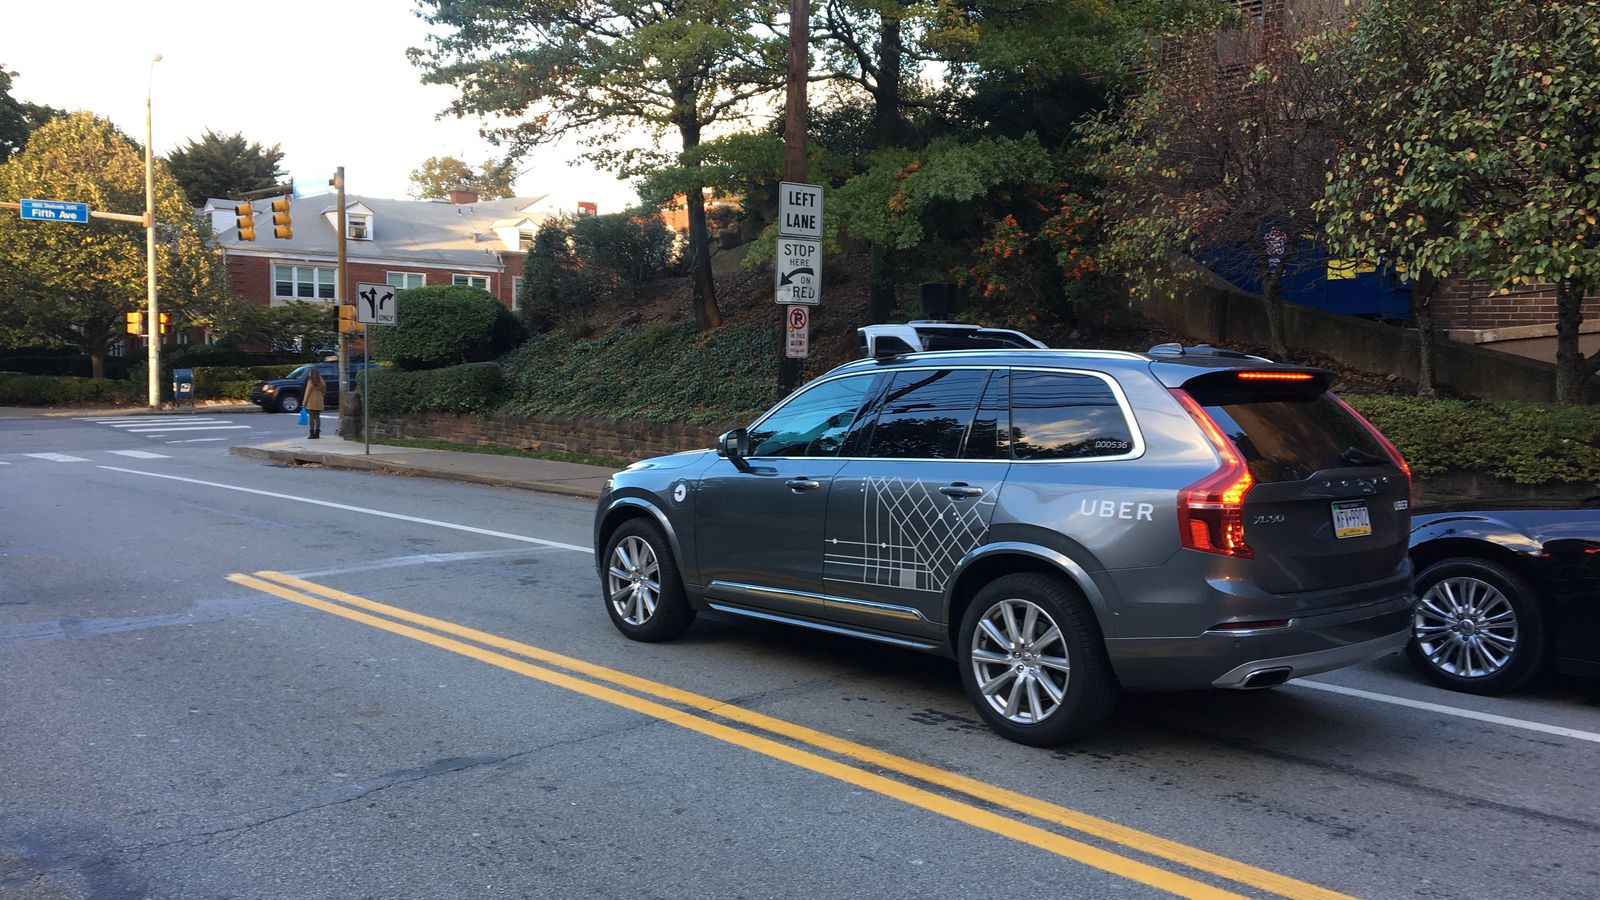 Uber S New Self Driving Volvo Suvs Have Been Spotted In Pittsburgh